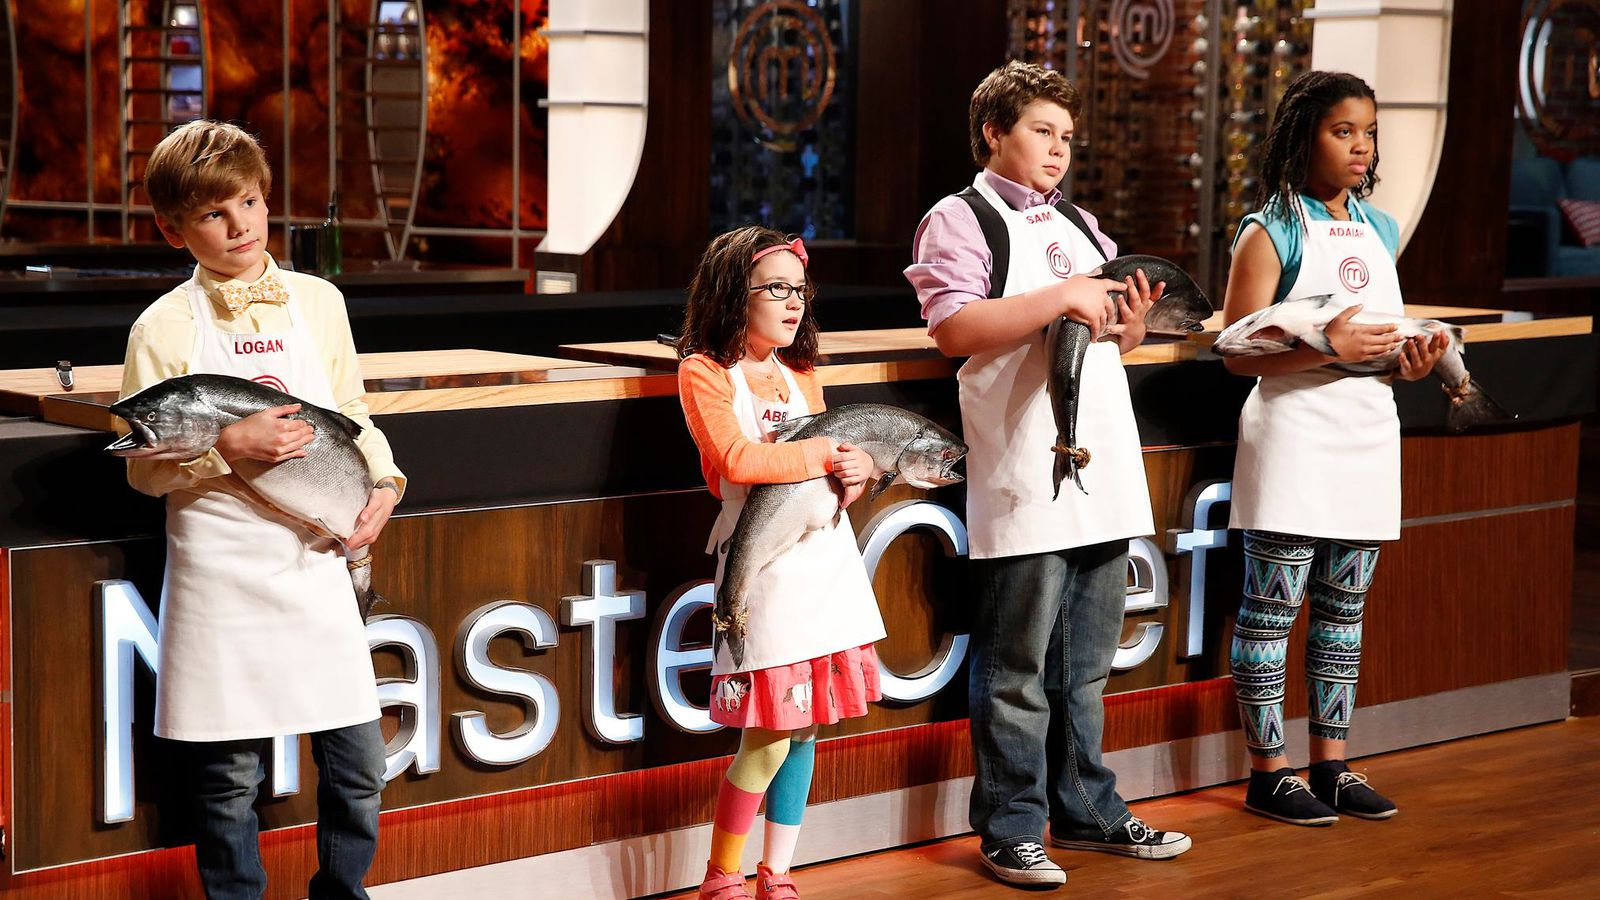 Masterchef junior episode 6 plenty of fish in the sea eater for Plenty of fish denver